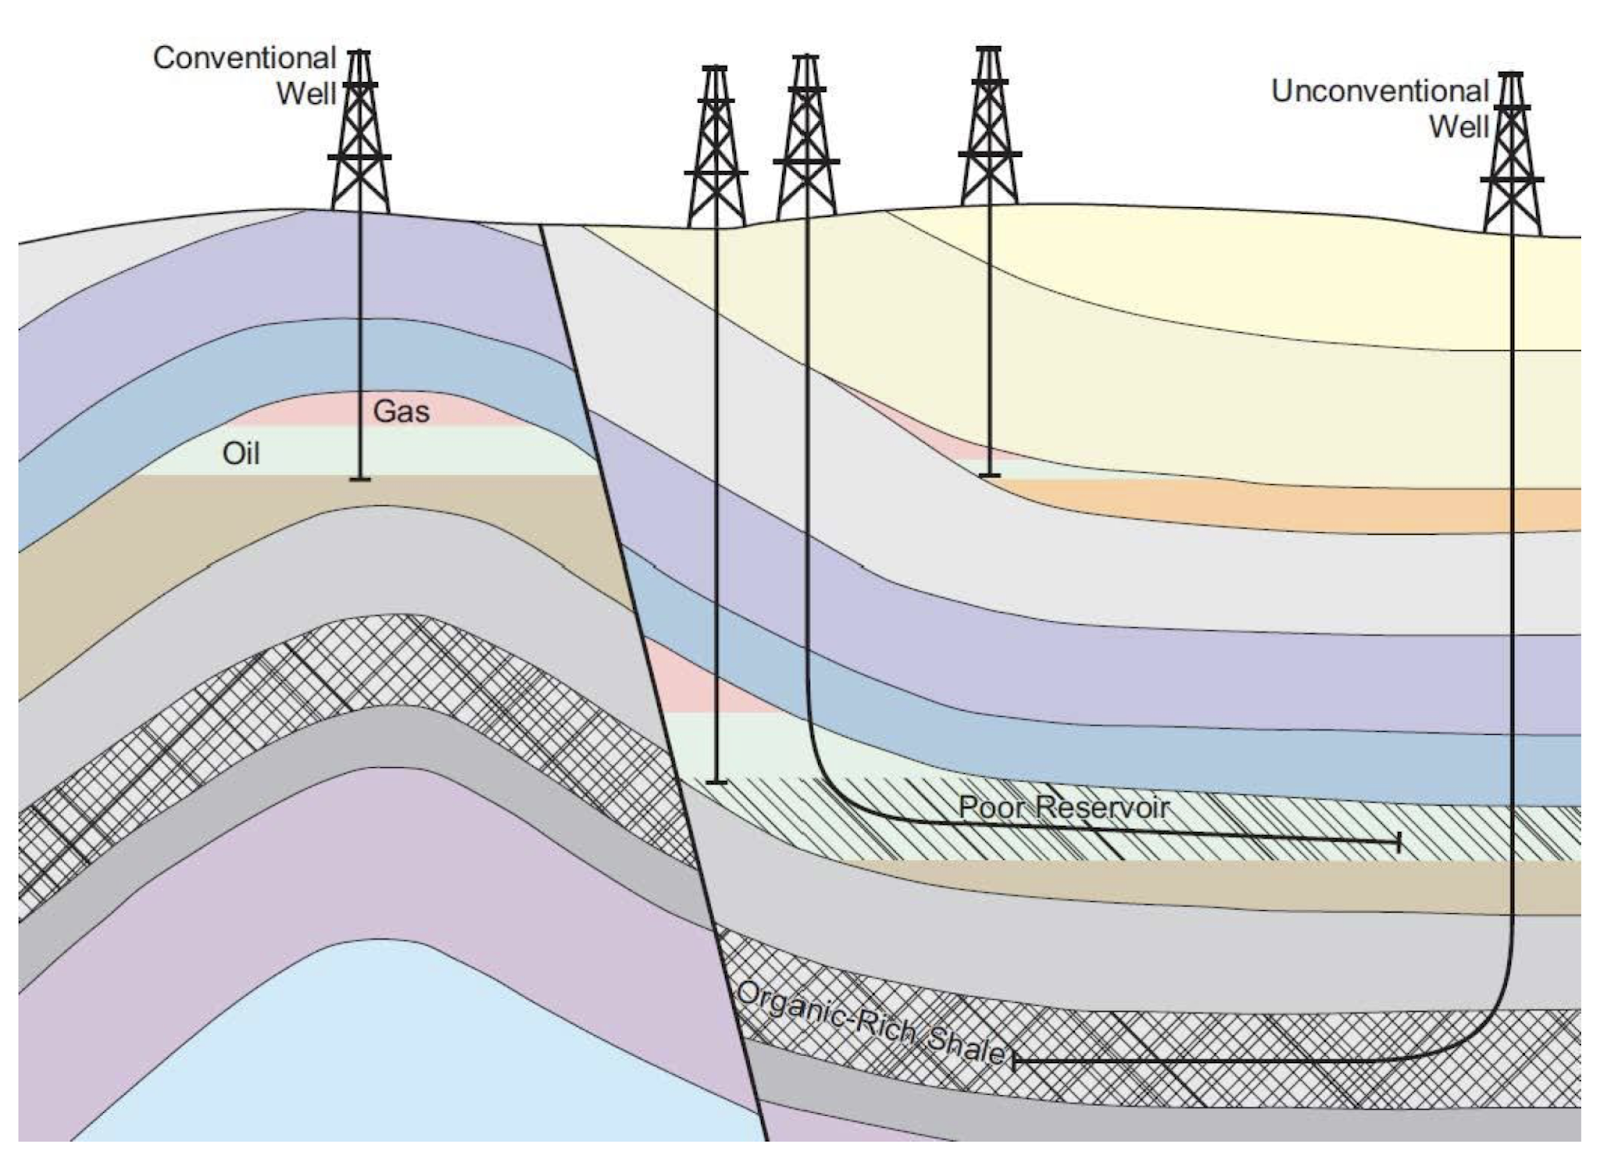 here is map from the eia showing the full extent of unconventional oil and natural gas plays in the united states